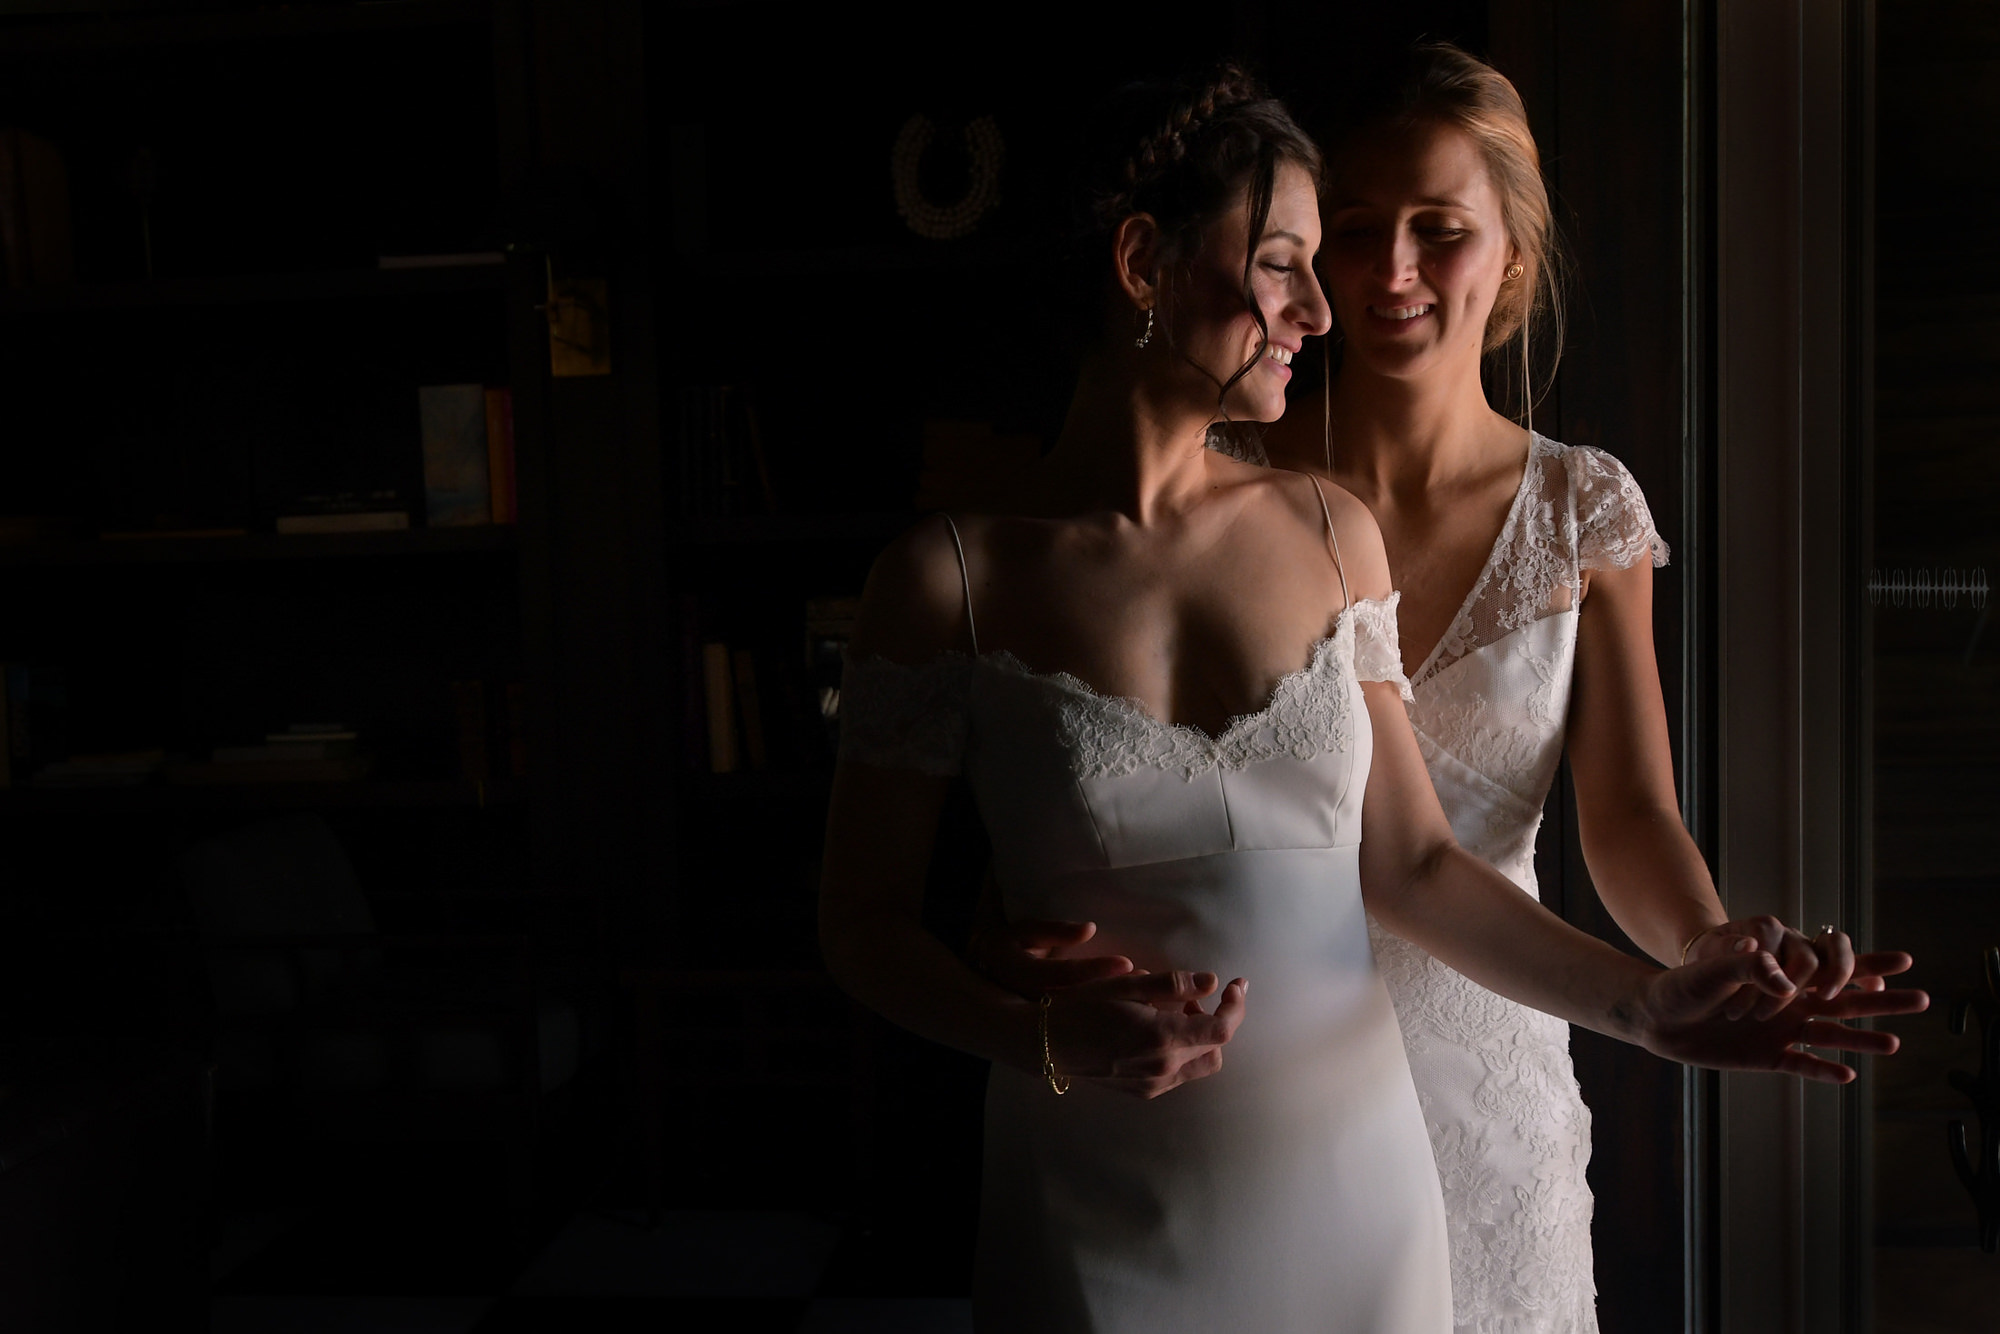 Bride holding bride in windowlight  - Daniel Aguilar Photographer